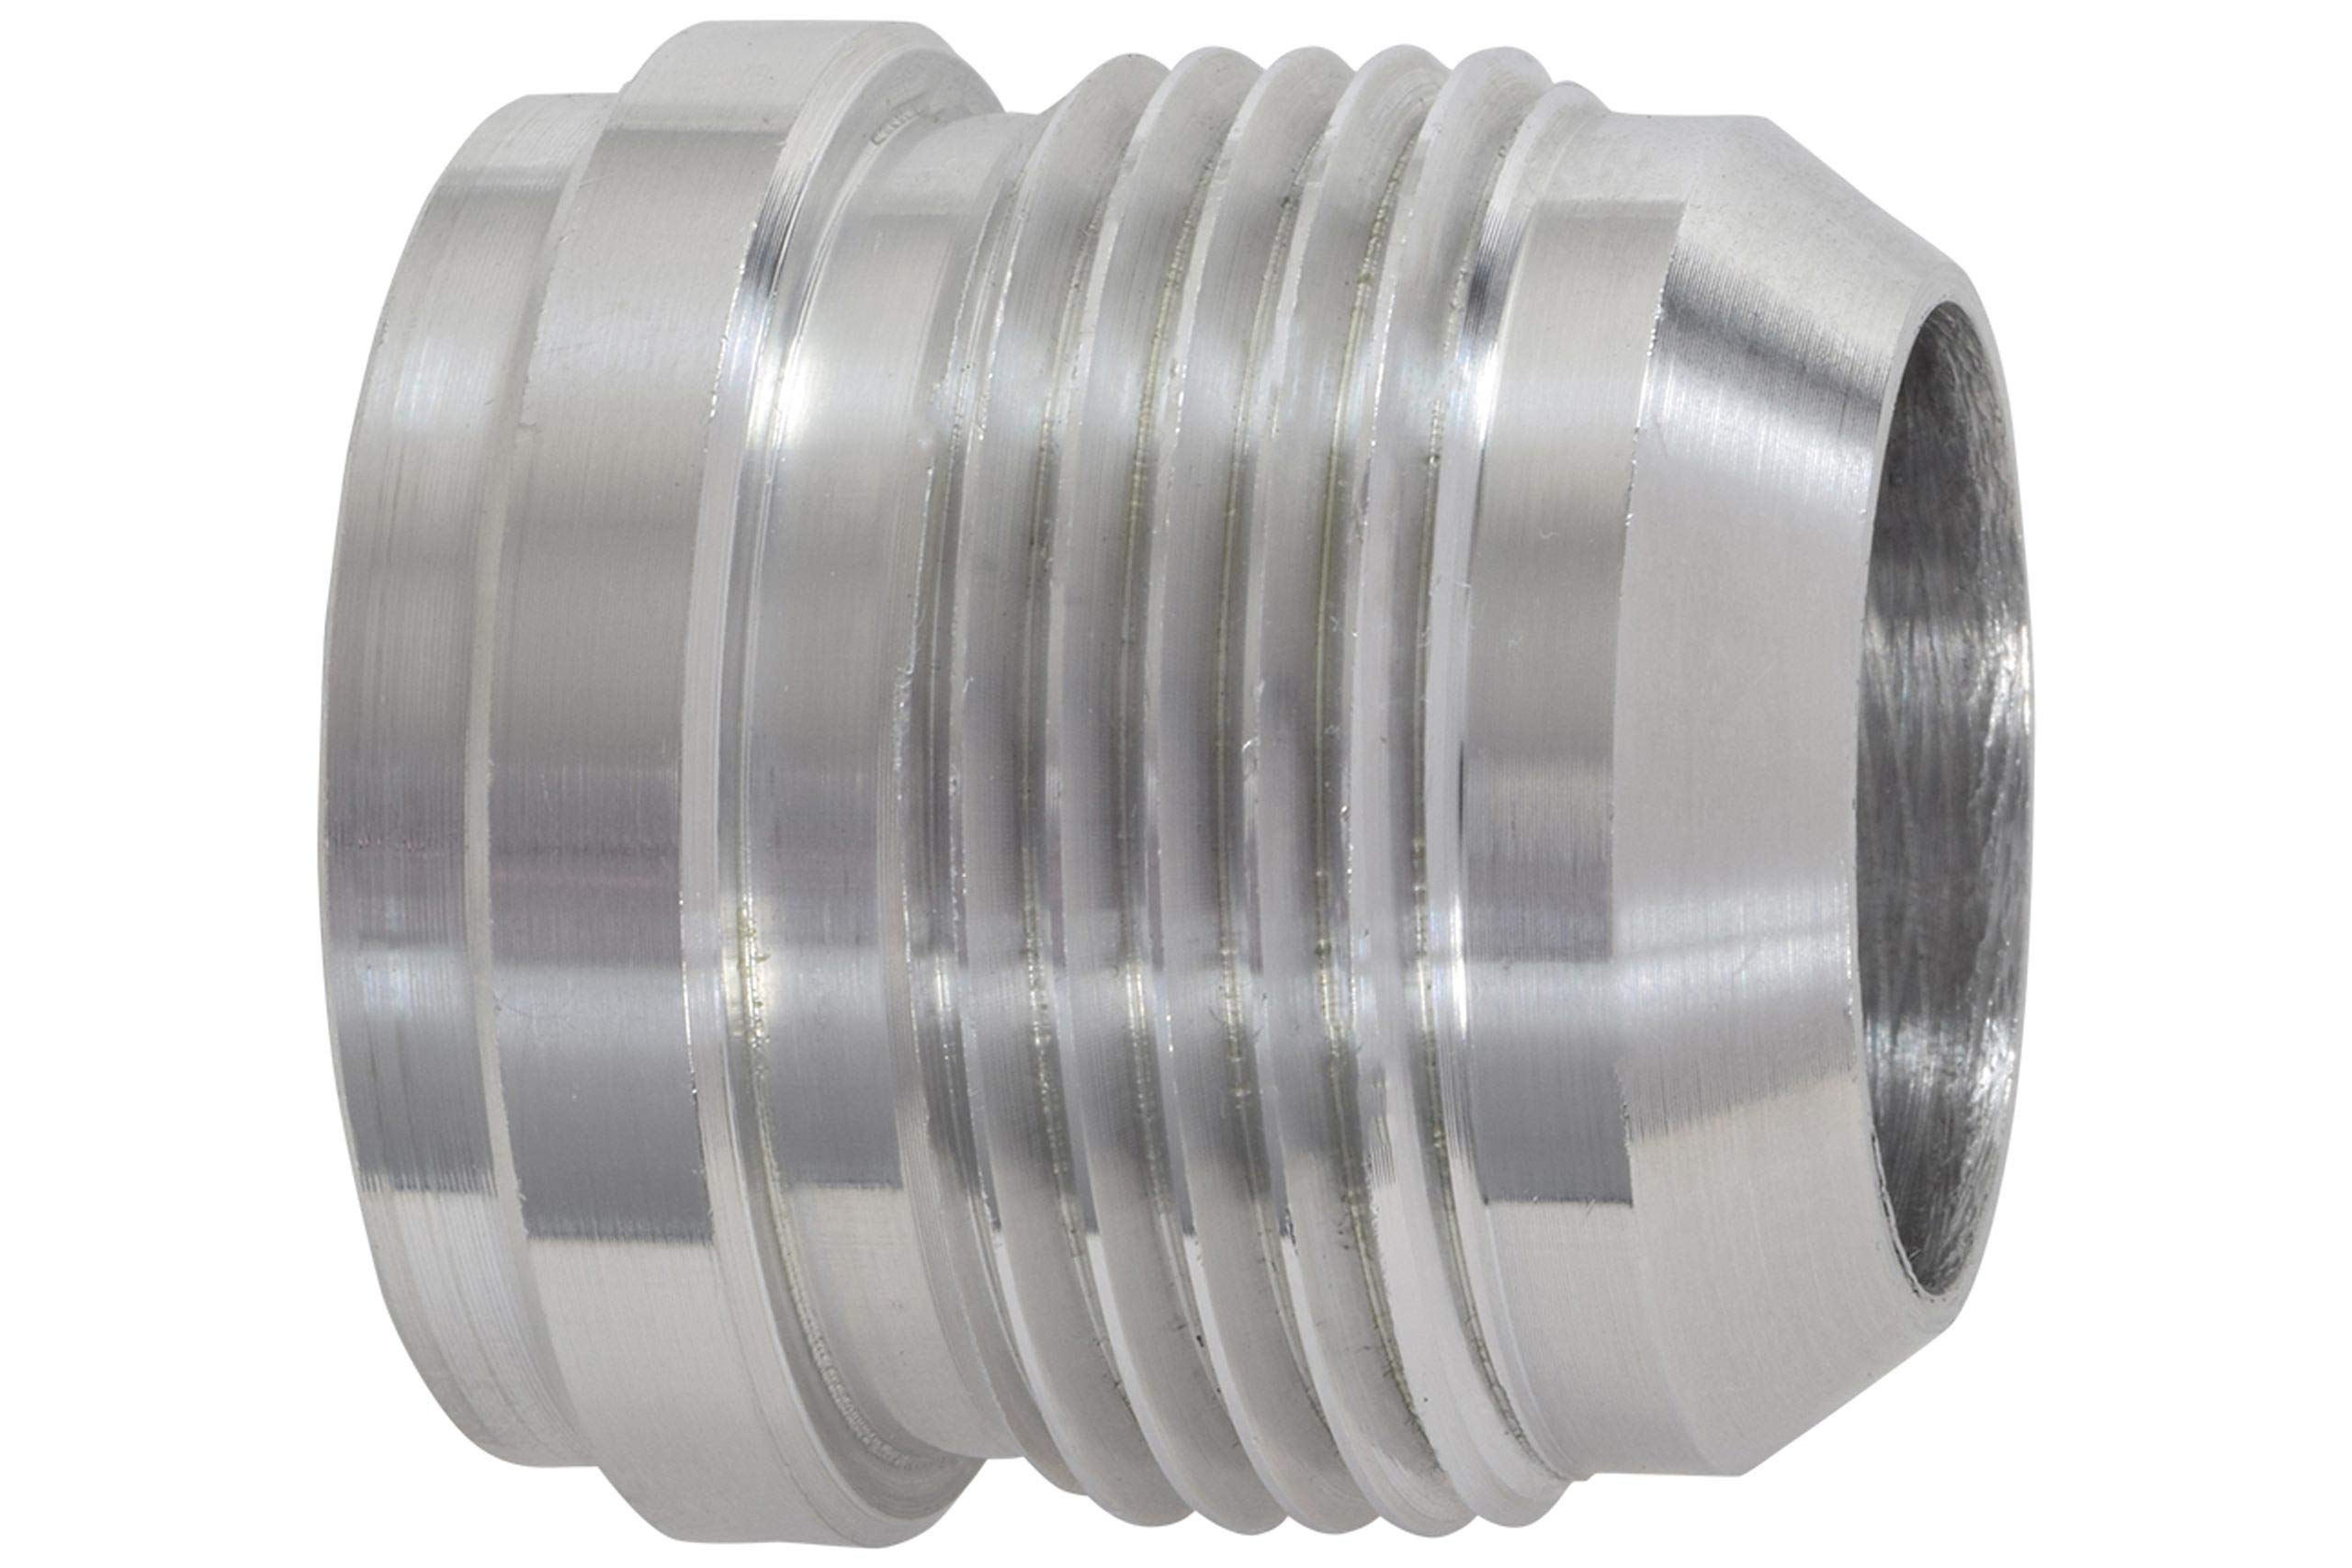 Steel AN Weld on Bung 6AN Male Flare Hose Fittting Adapter Weldable Steel End Nipple with Step